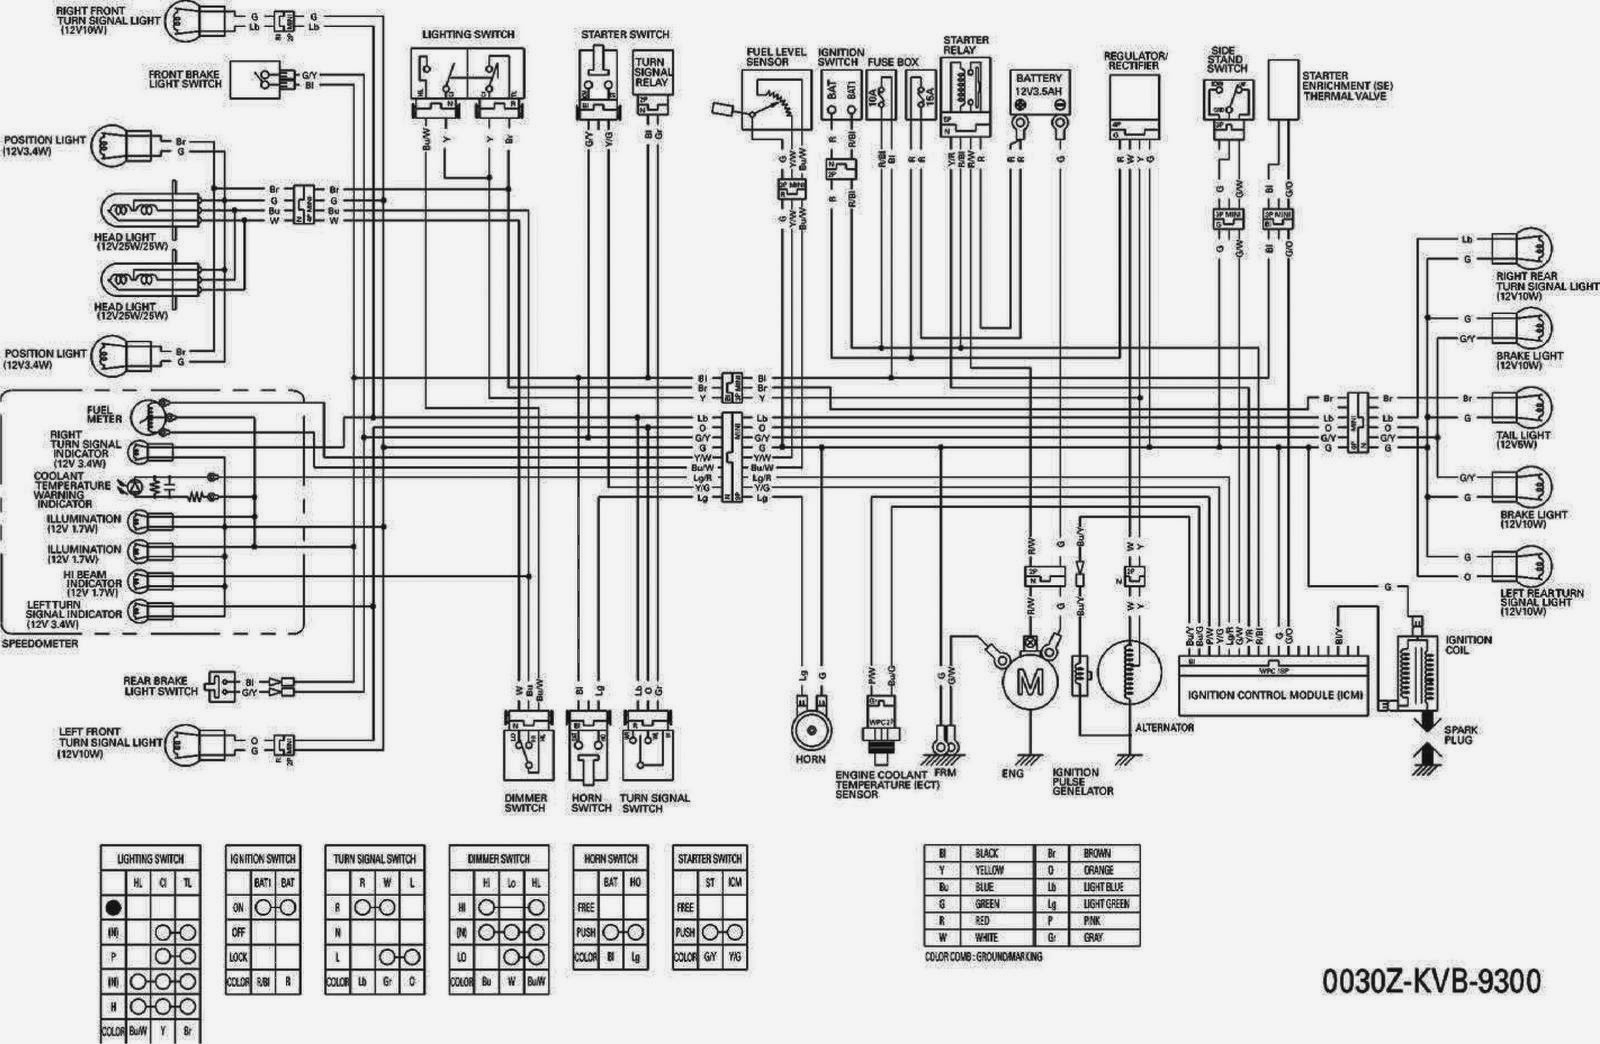 yamaha 703 remote control wiring diagram goodman heat pump thermostat  the